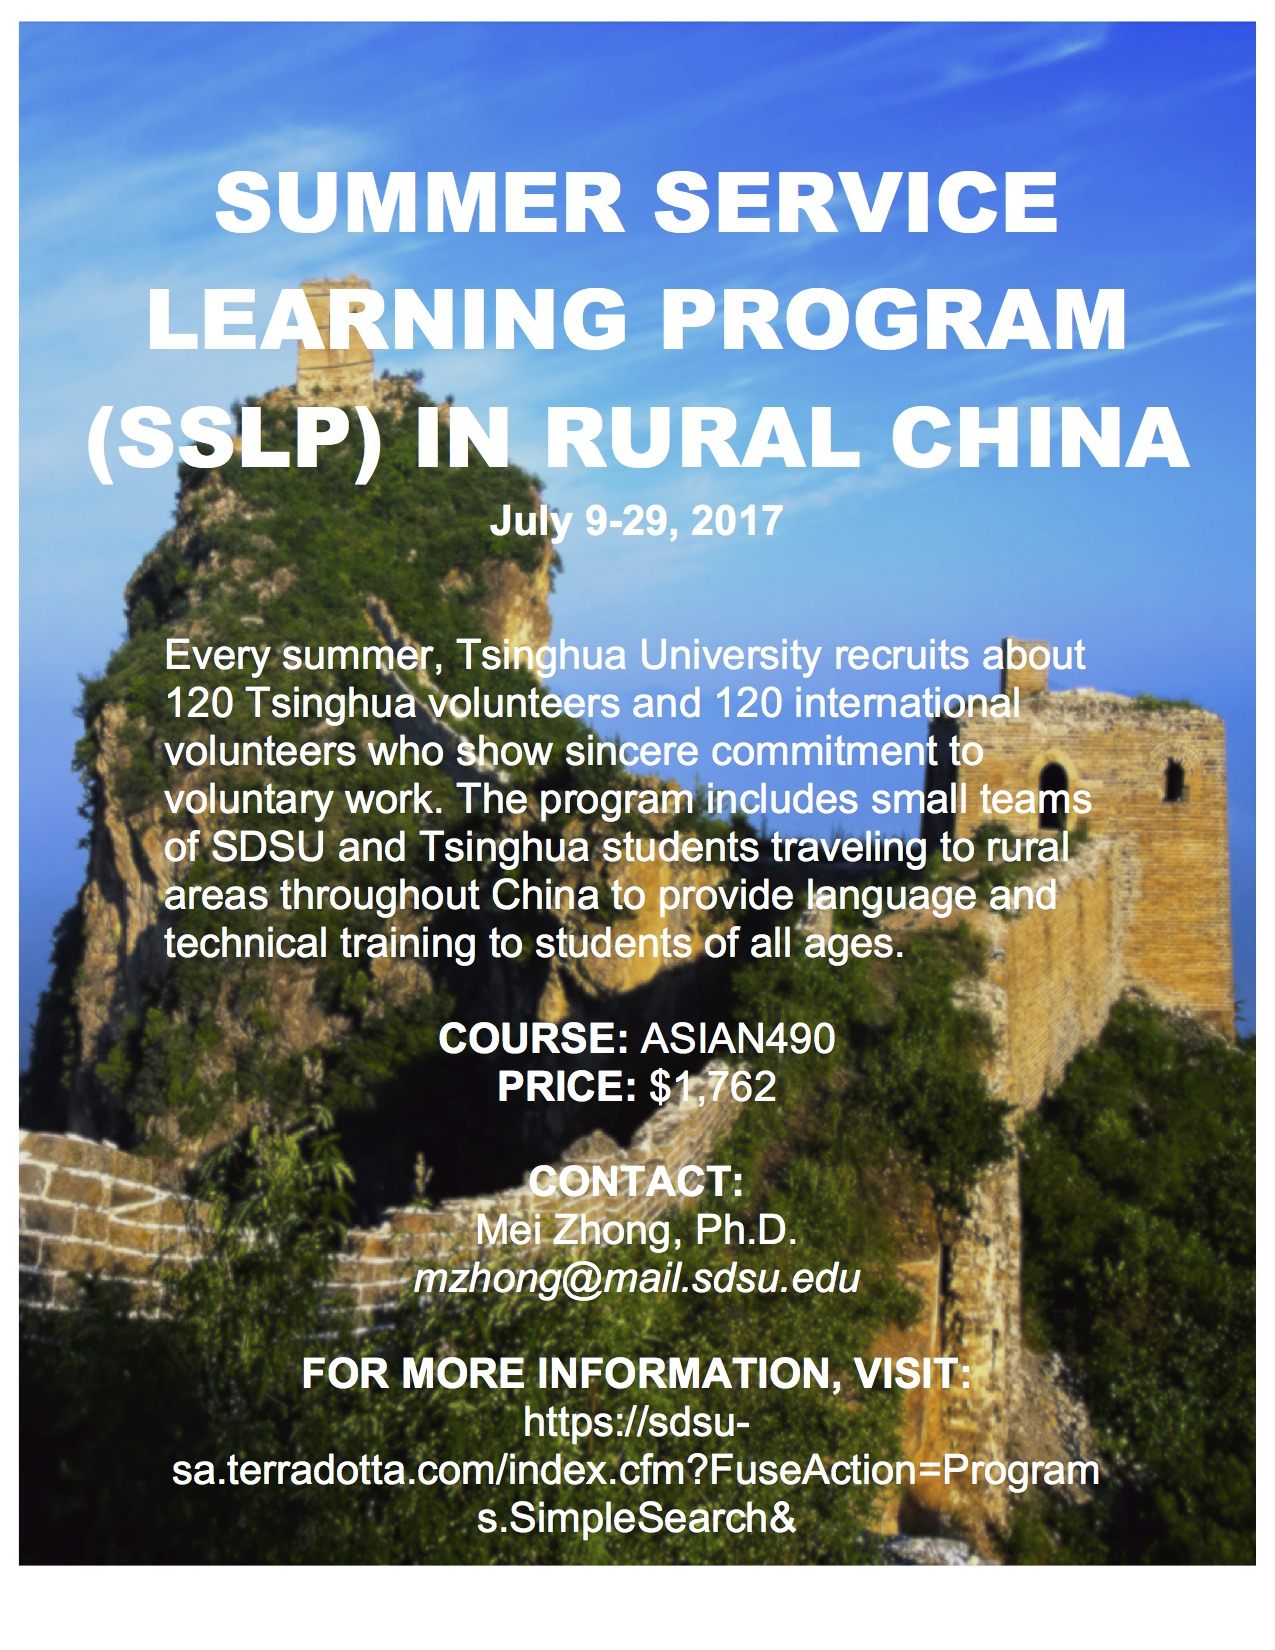 Summer Service Learning Program in Rural China